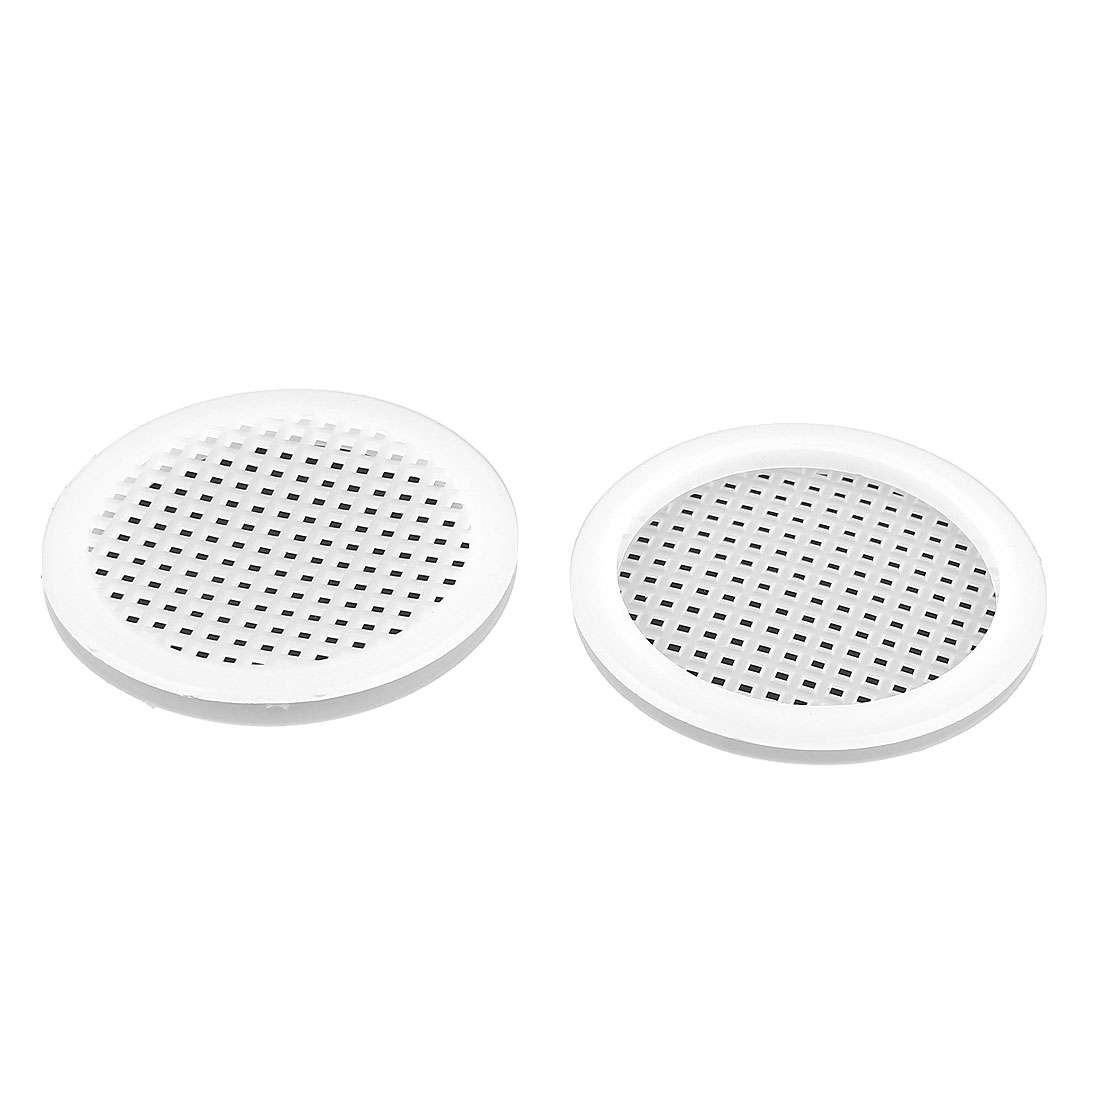 Plastic Round Shape Holes Design Sink Basin Strainer White 2 Pcs